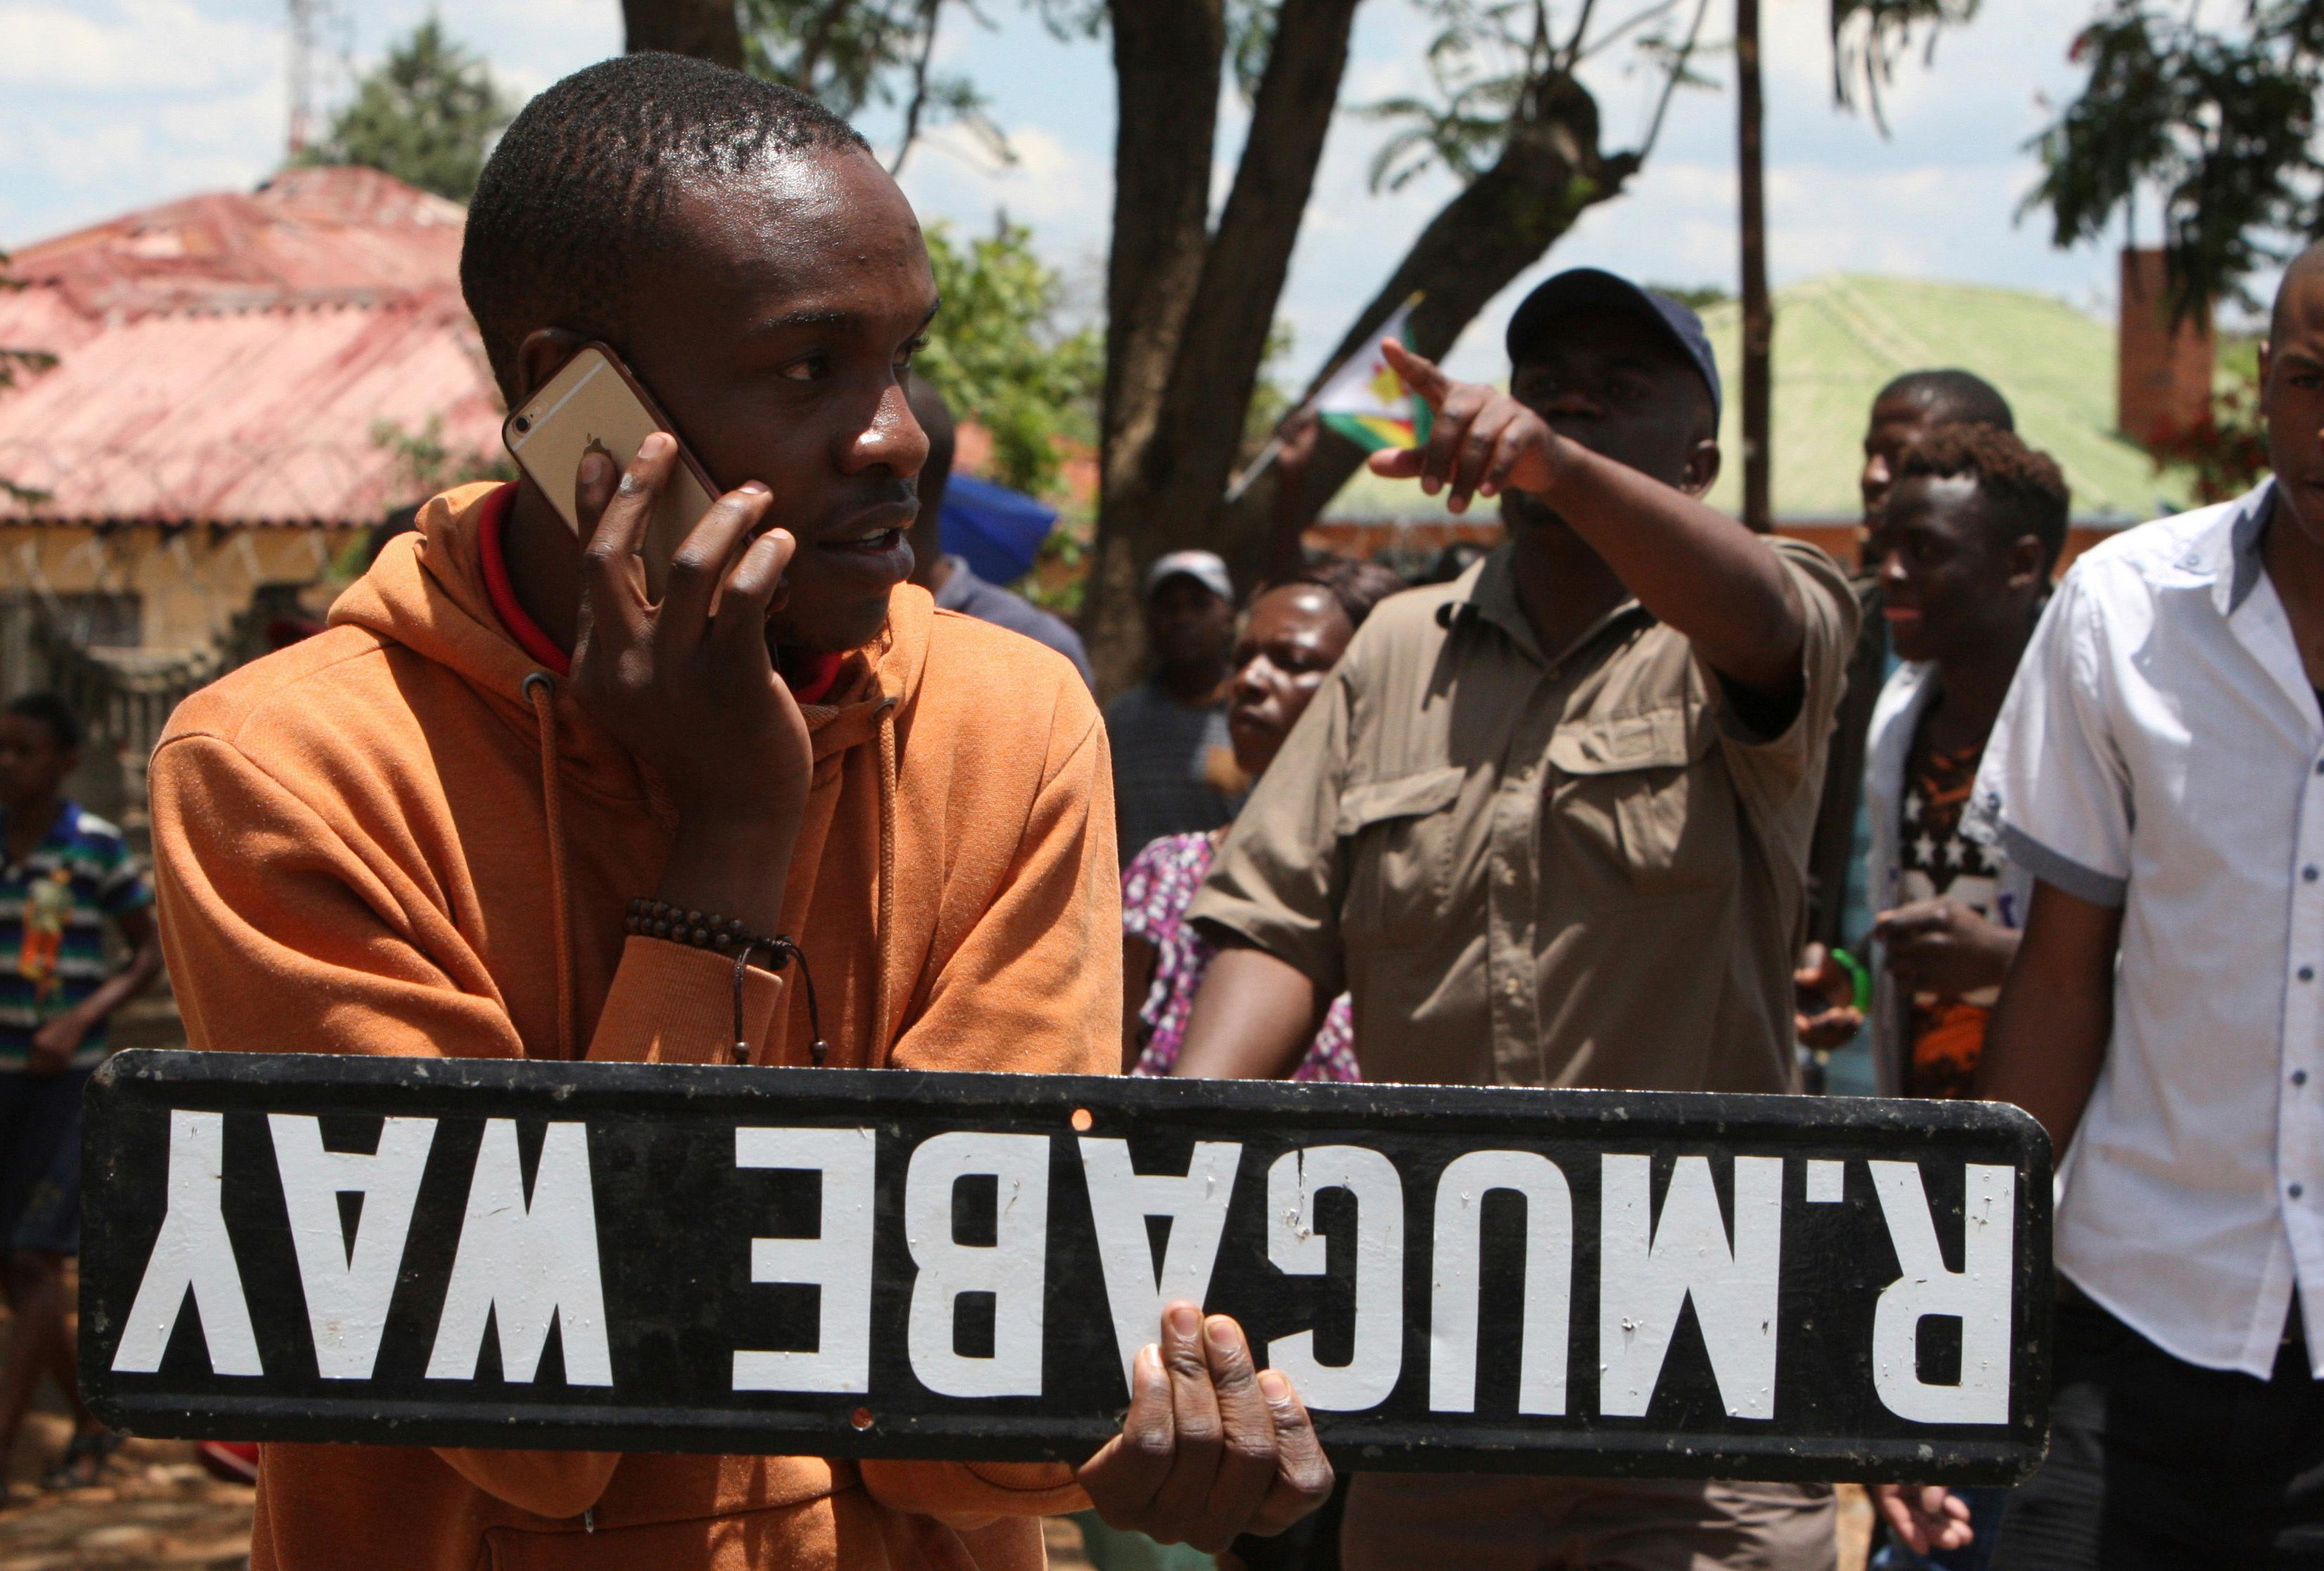 A man holds a street sign as hundreds gather in Bulawayo, Zimbabwe, Saturday, Nov. 18, 2017 to demand the departure of President Robert Mugabe after nearly four decades in power. (AP Photo/Lucky Tshuma)